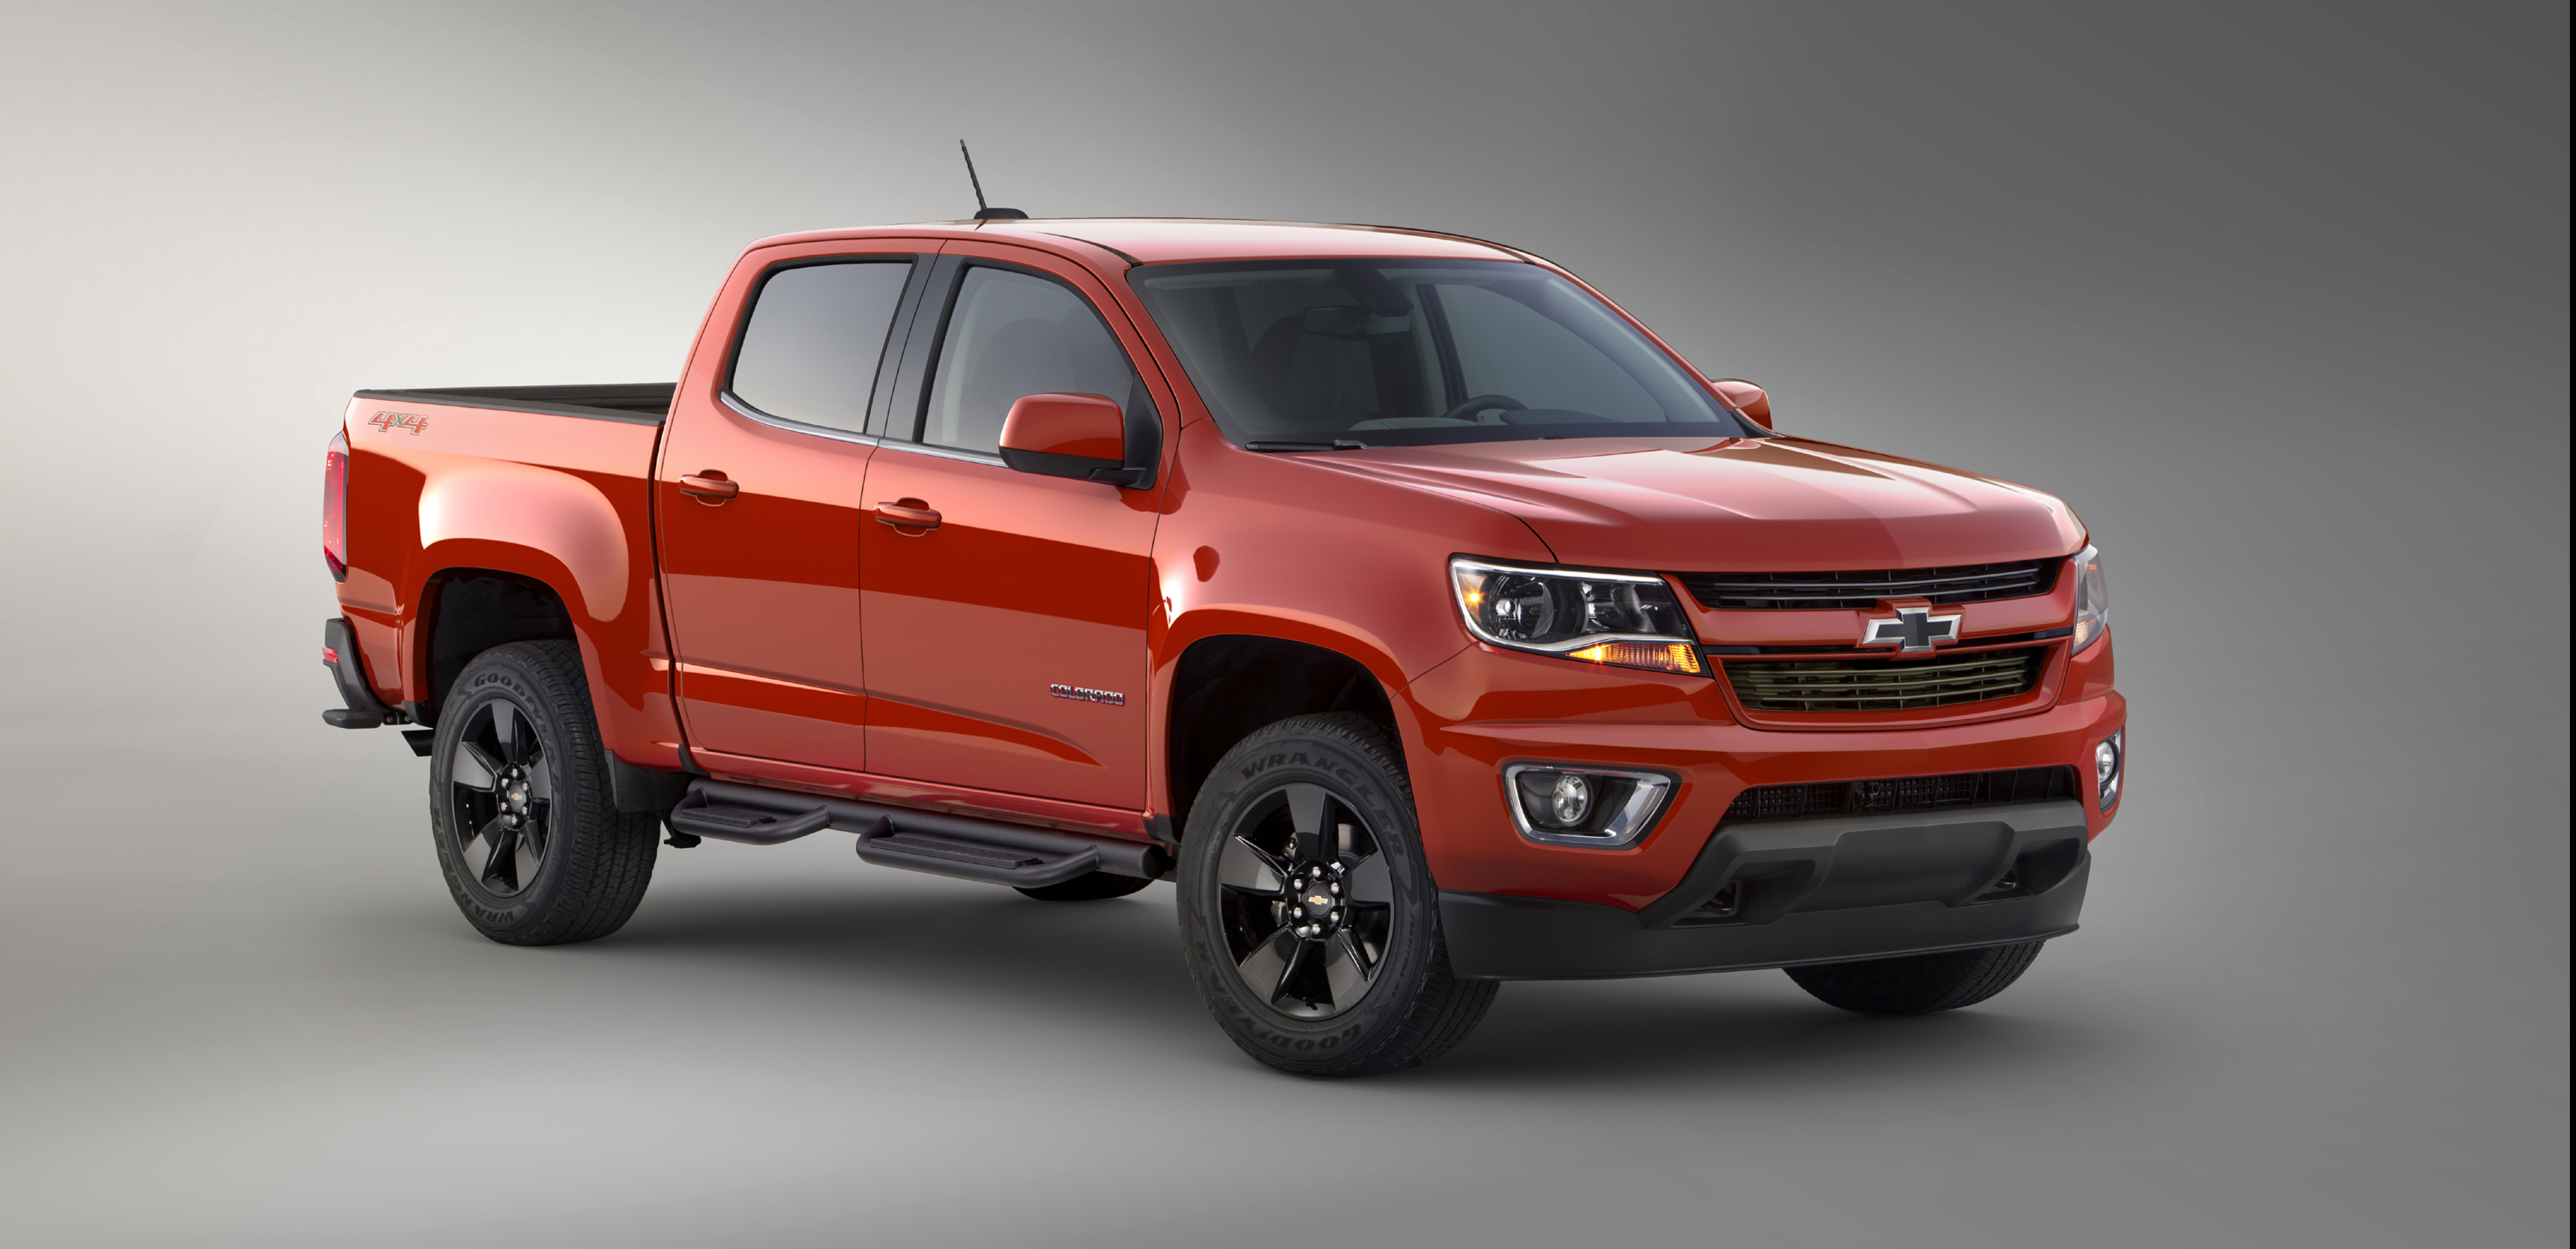 Bow Tie Loving Outdoors Types With An Eye Toward The New Chevy Colorado Will Find Newest Model Ealing